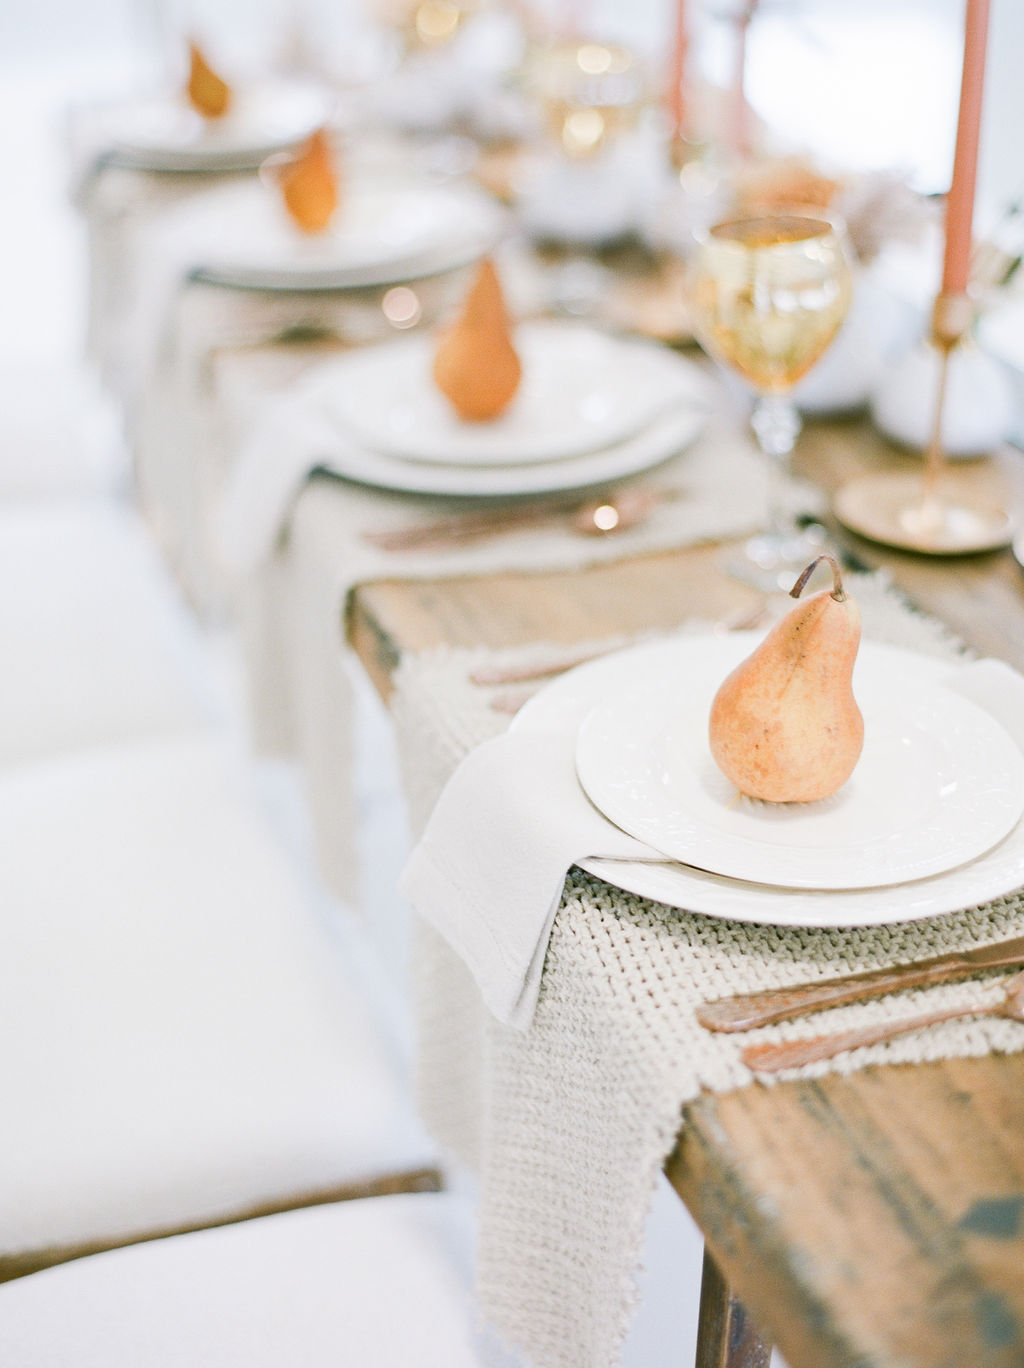 Gold pairs sit upon white plates on wood long table for newlyweds